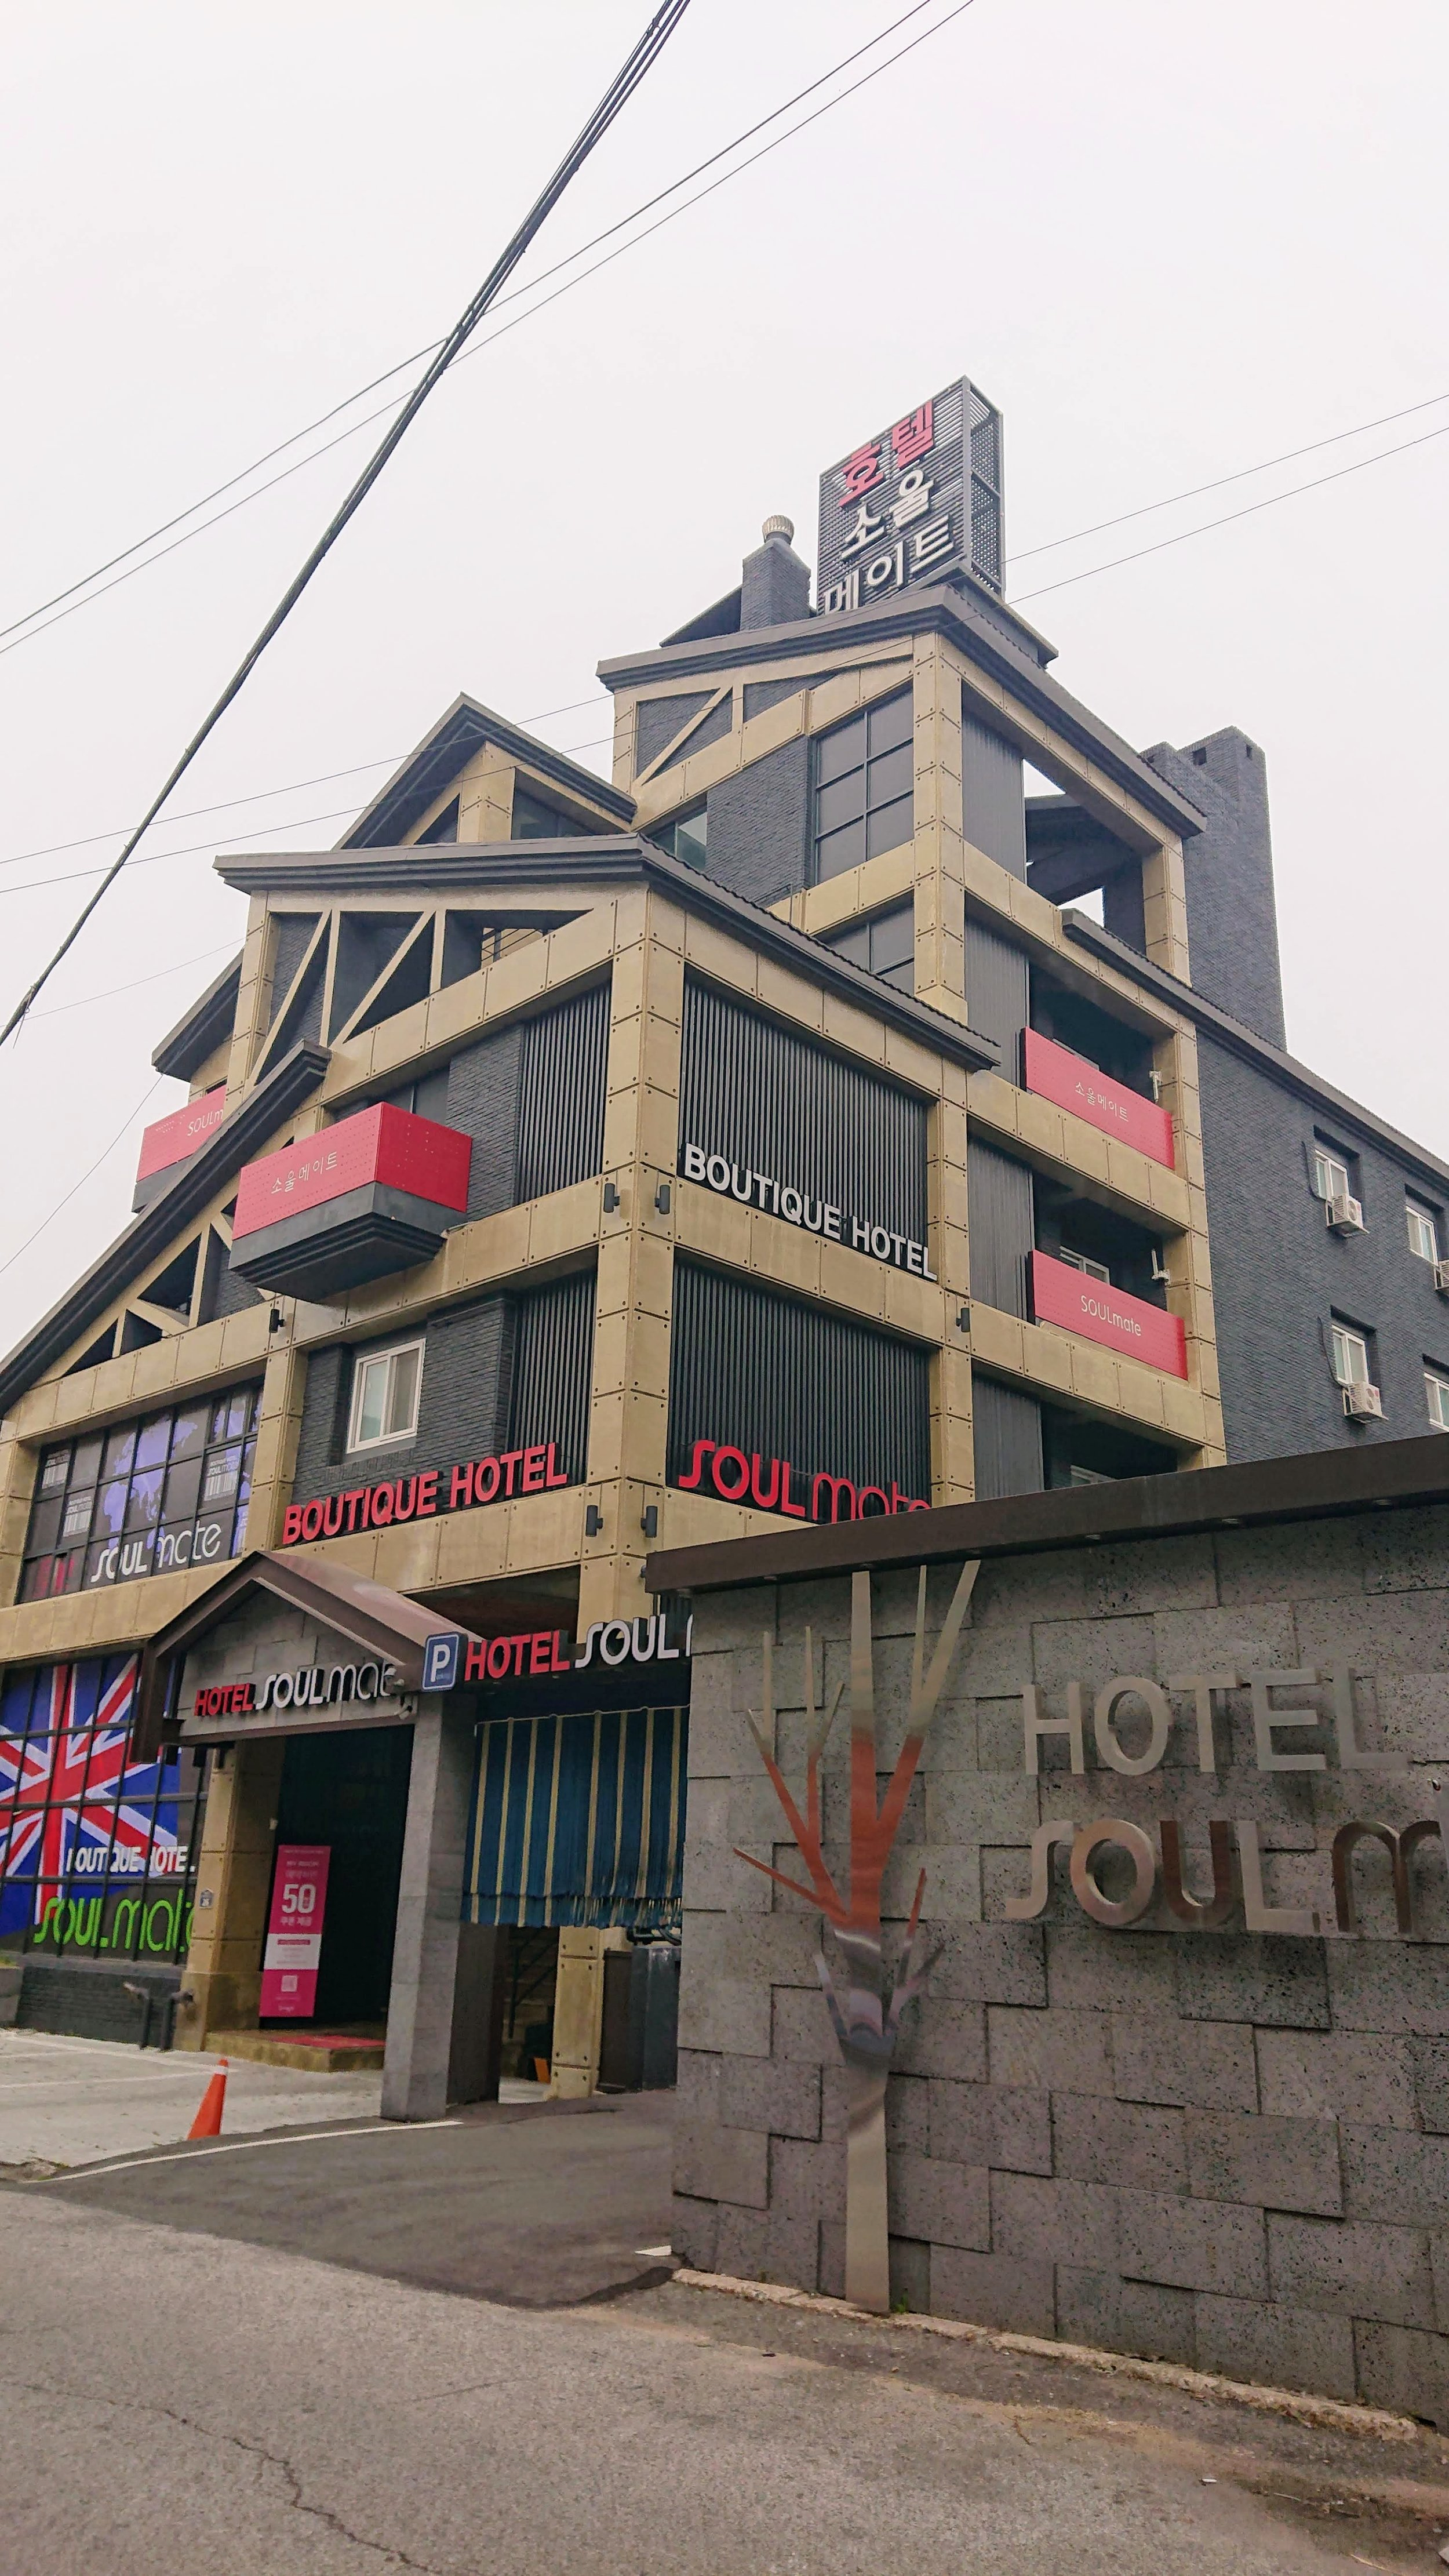 Soulmate Hotel, Songwonseo-ro 6-gil, Gumi, South Korea. Neil claims the hotel was meant for us due to the huge Union Jack flag out front.